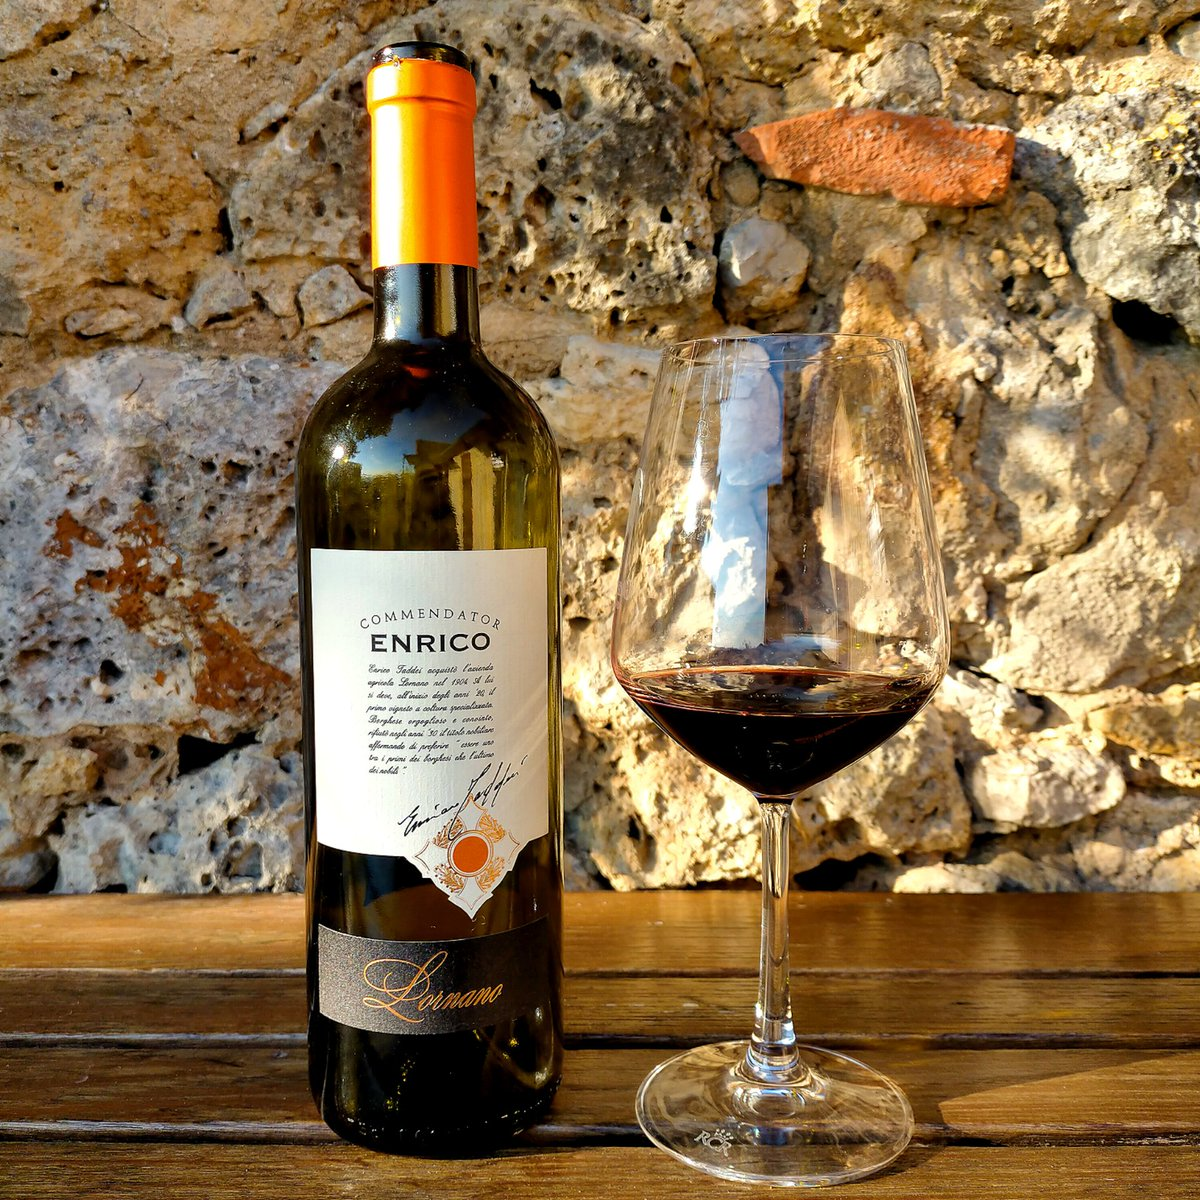 Let's turn the #BlueMonday in Red Monday!! Drink Lornano's wines and cheers! 🍷🍷 Find our products on the webshop   #lornanochianticlassico #lornano #chianticlassico #redmonday #redwine #glassofwine